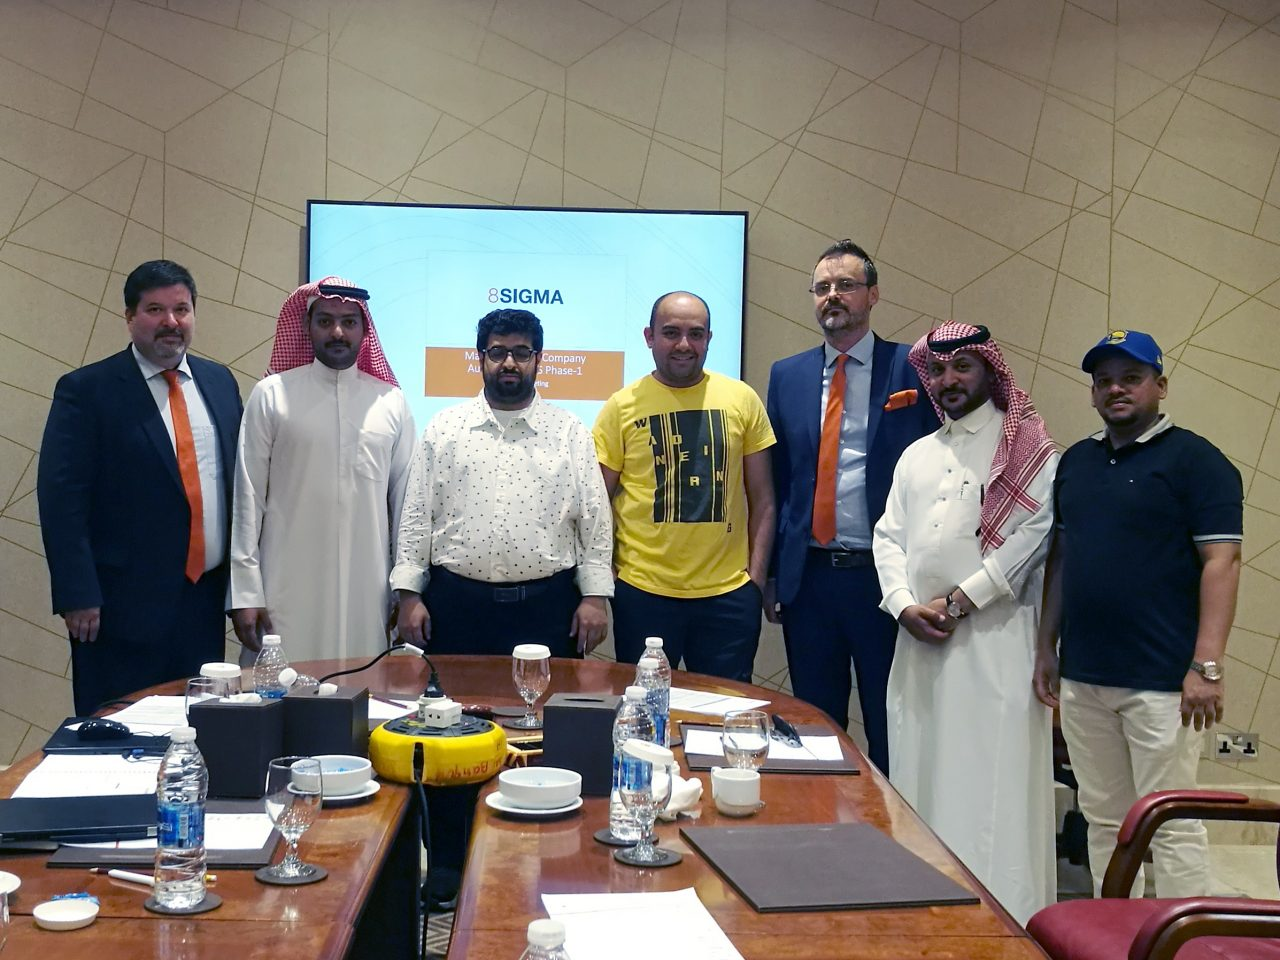 Ma'aden Aluminium engages 8Sigma to implement MES solution